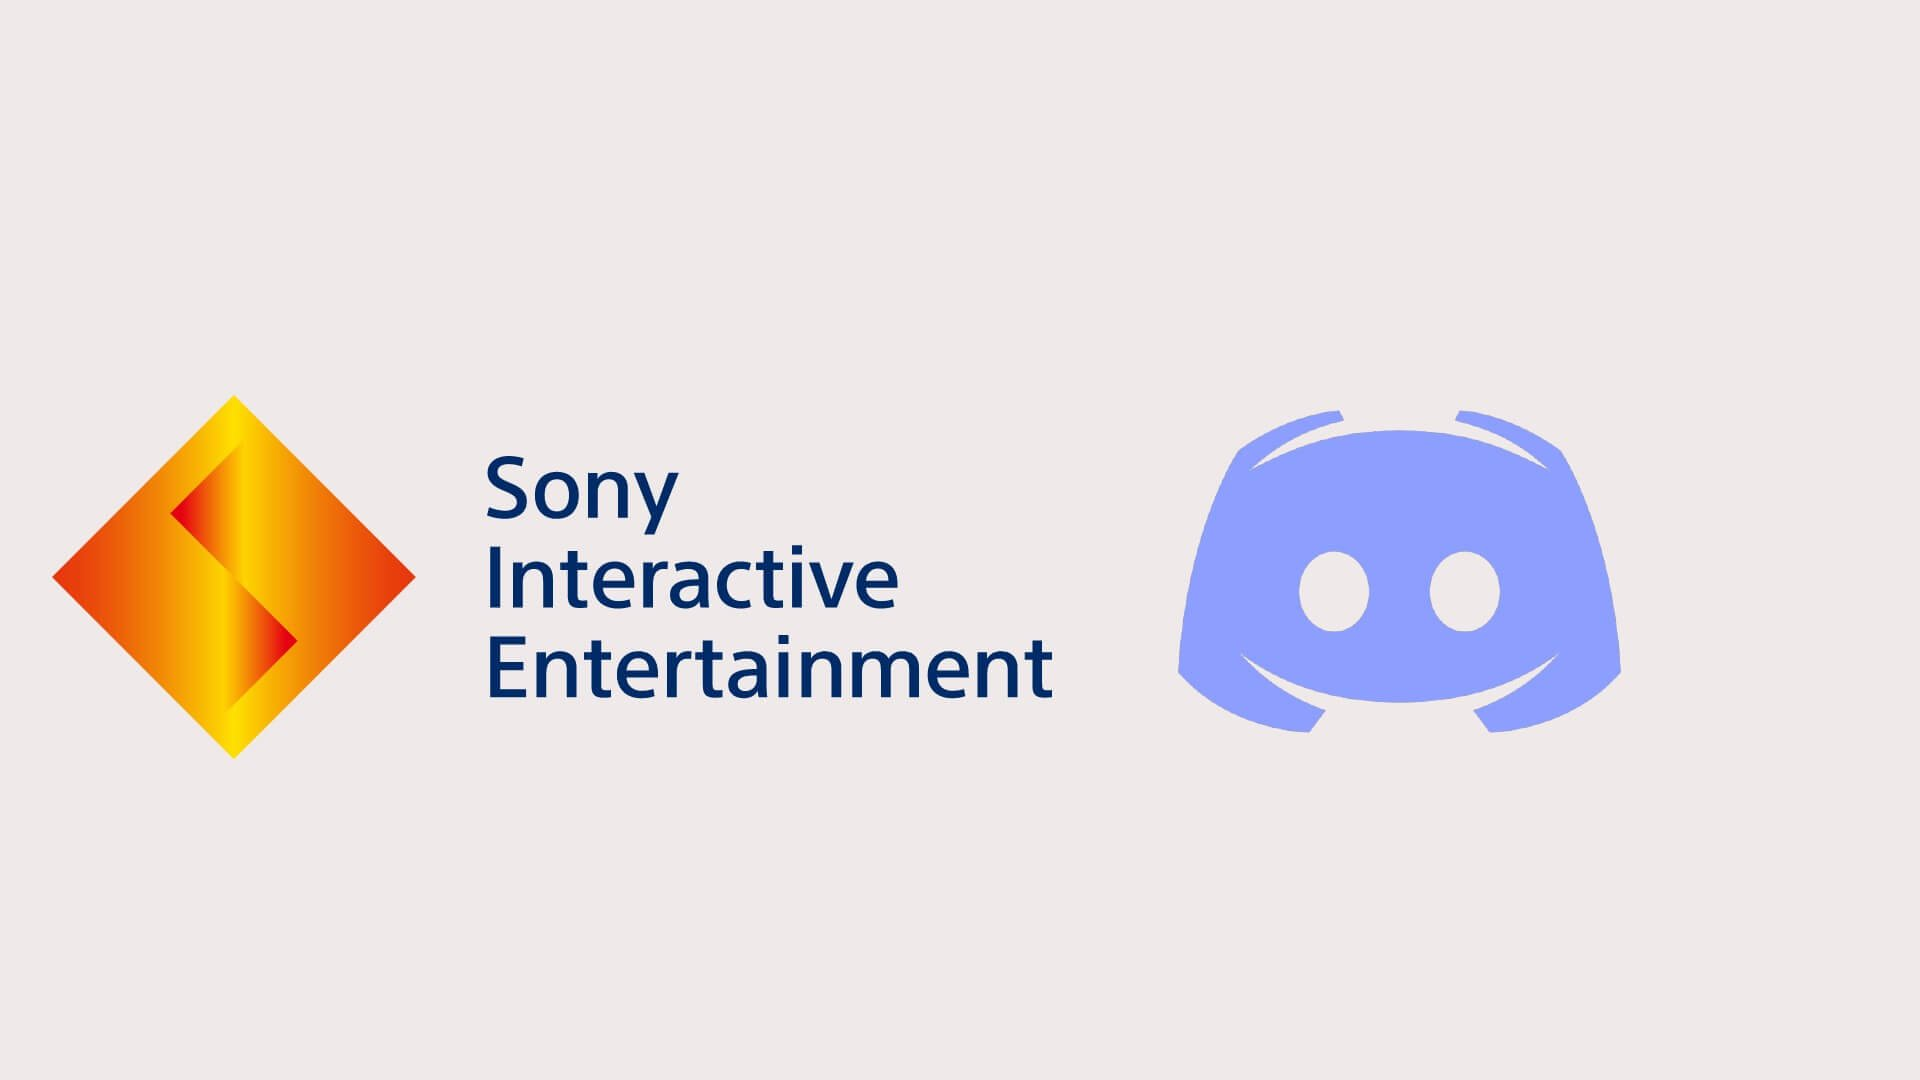 Discord and PlayStation Partnership Announced by Sony